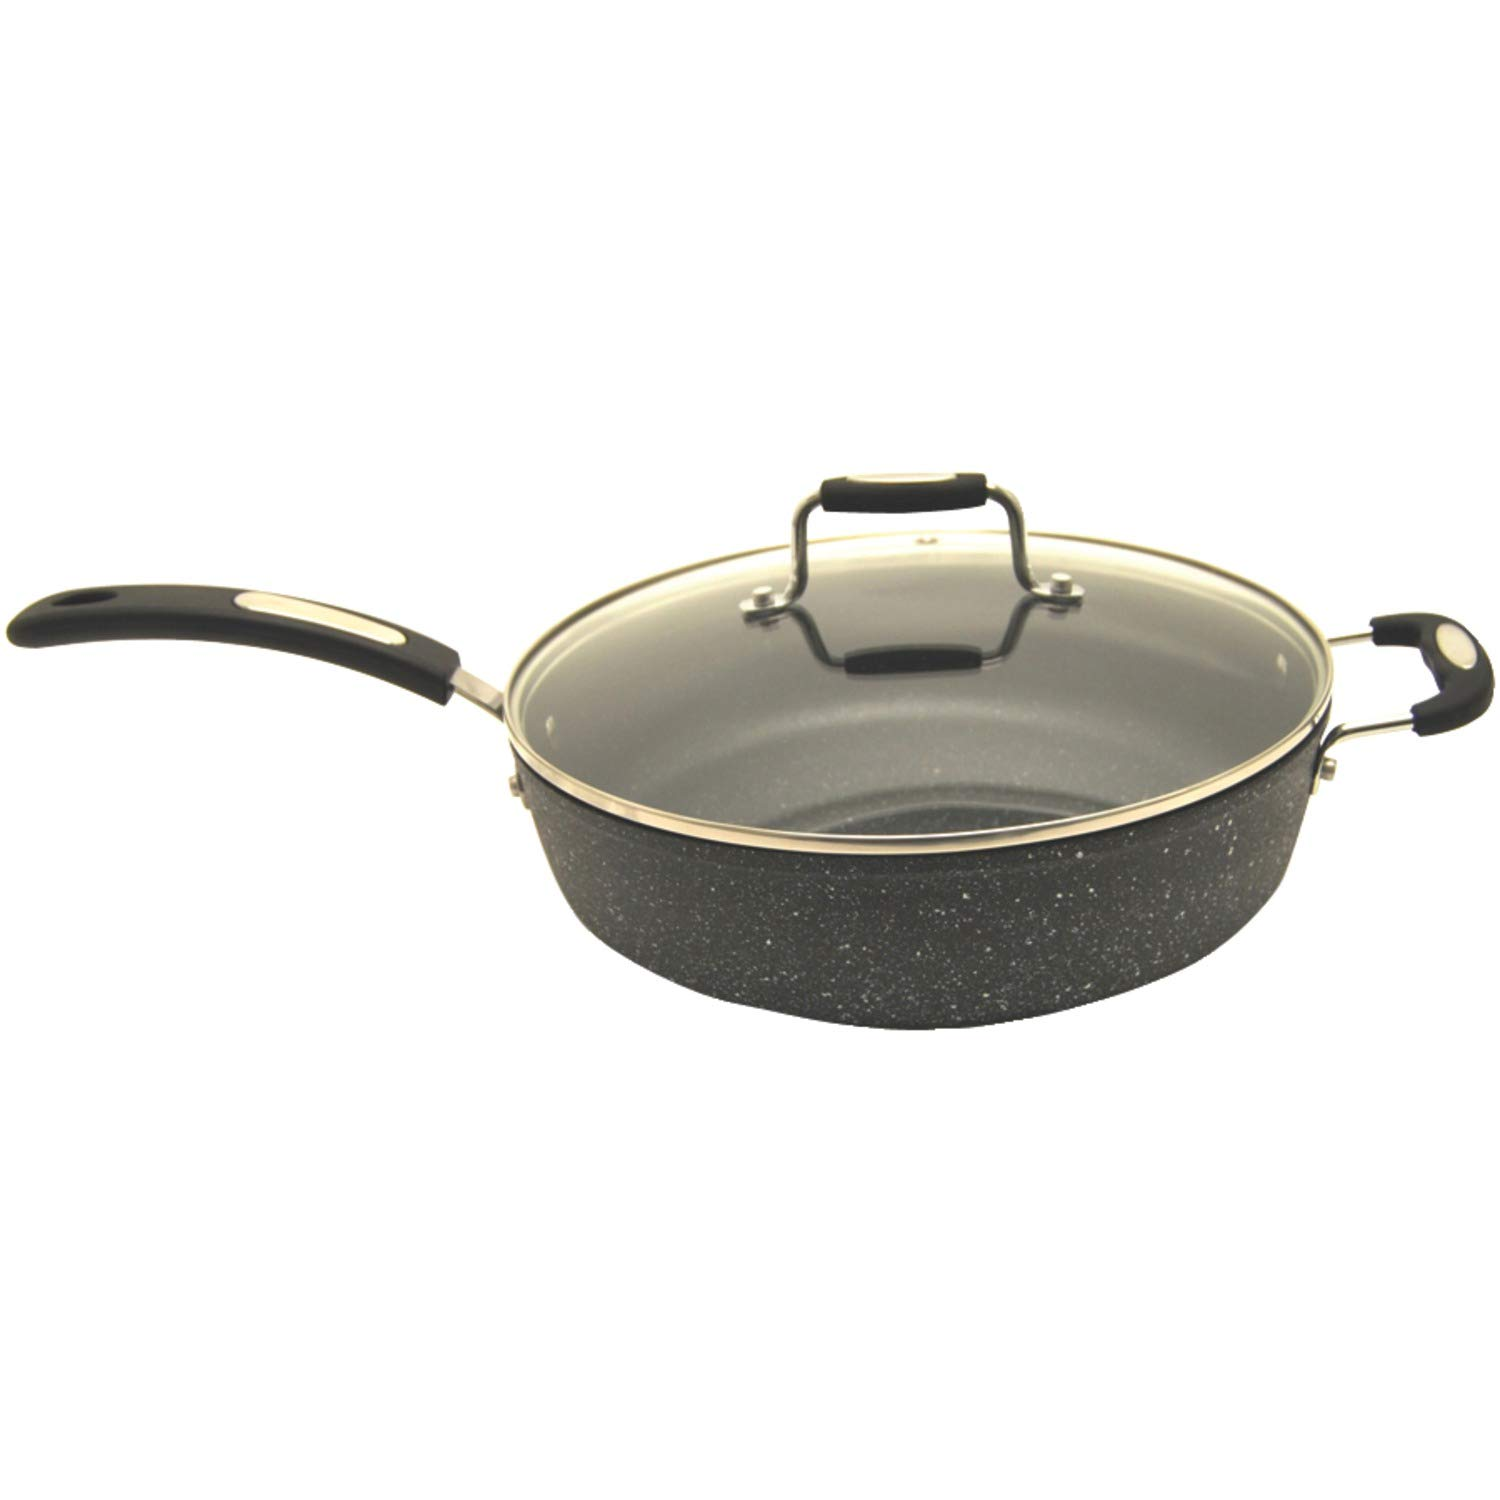 THE ROCK by Starfrit 060705-002-0000 11'' Deep Fry Pan with Bakelite Handle,Black by Starfrit